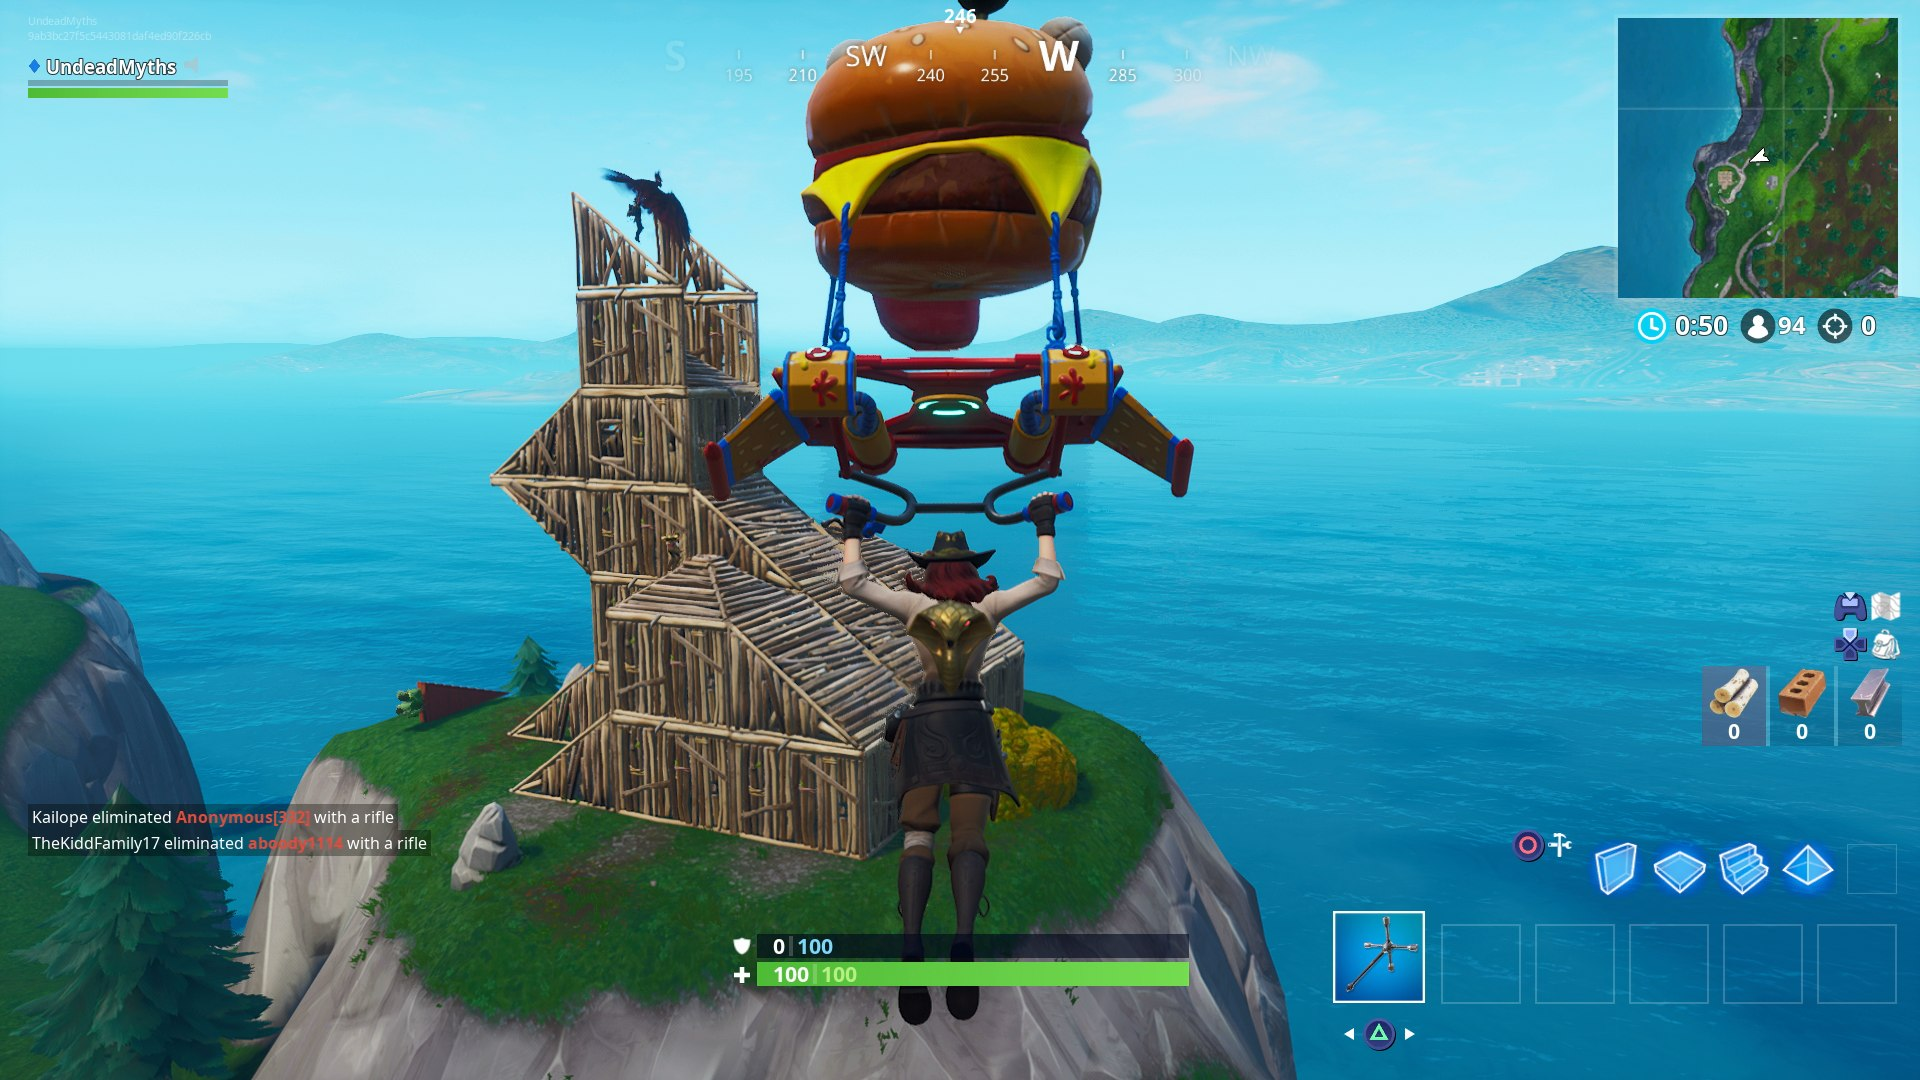 Fortnite Wooden Rabbit Stone Pig Metal Llama Locations How To